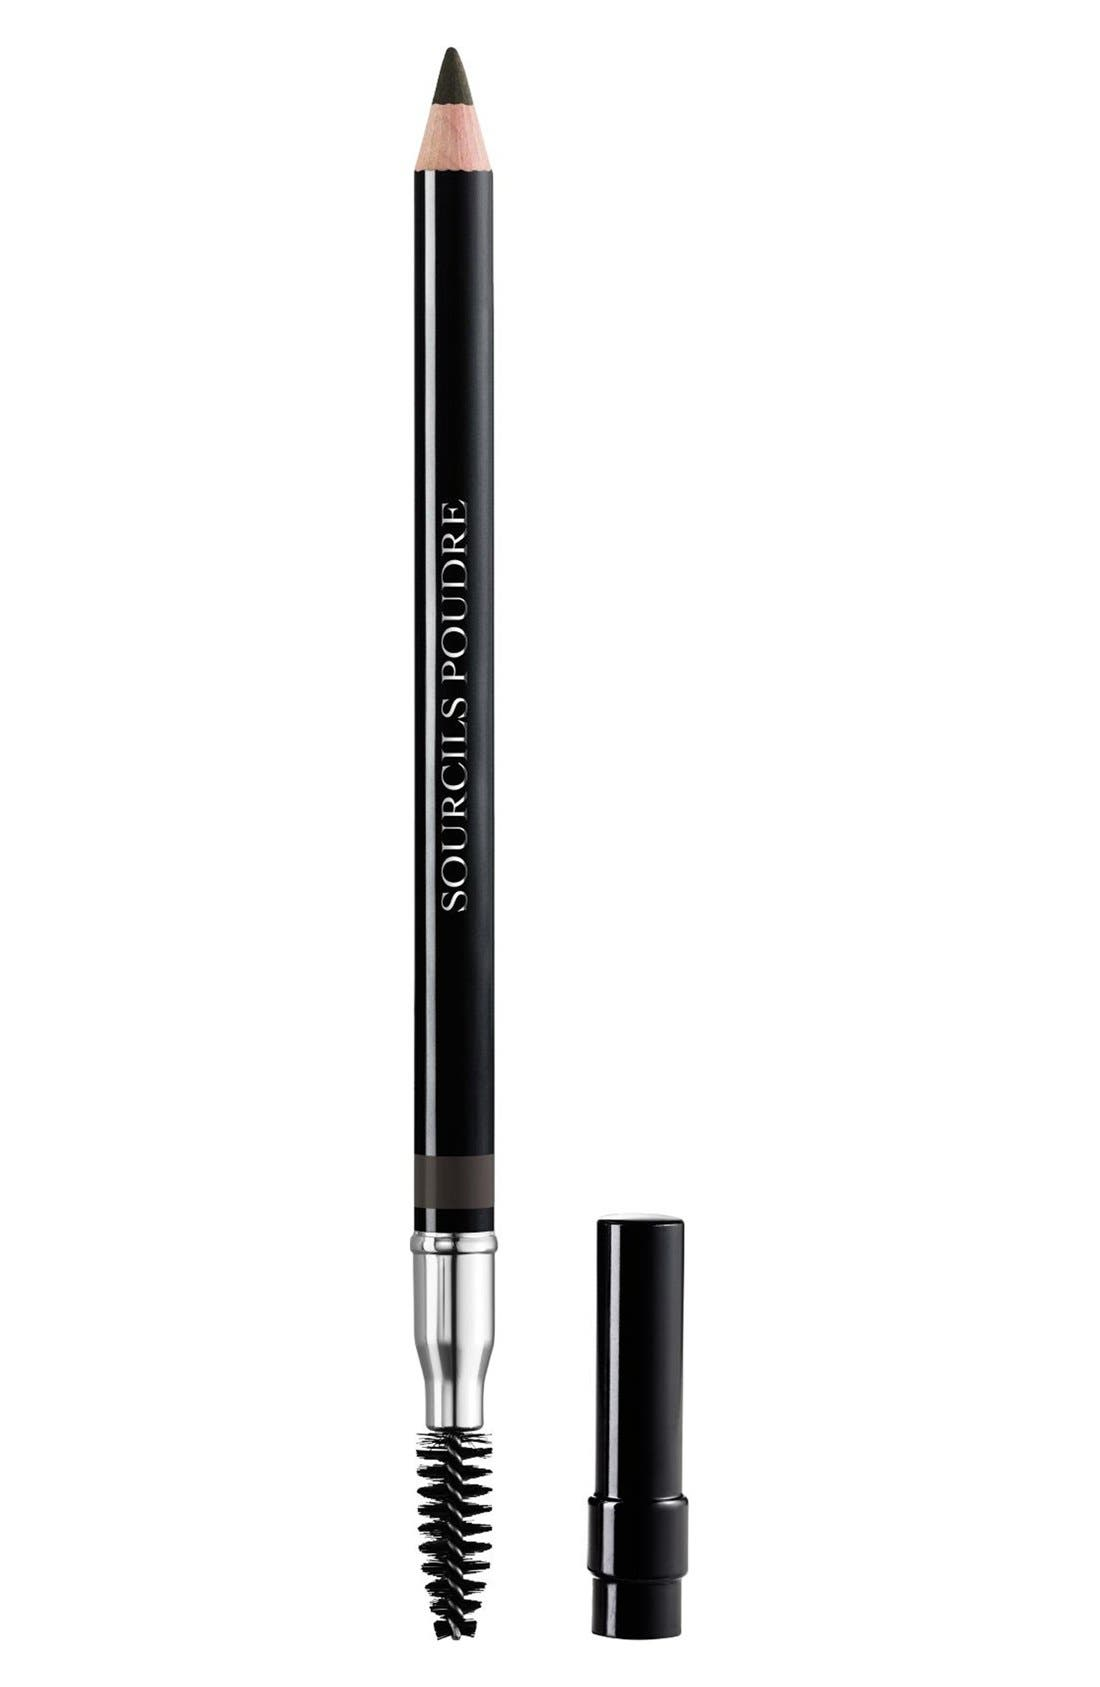 Dior 'Sourcils Poudre' Powder Eyebrow Pencil